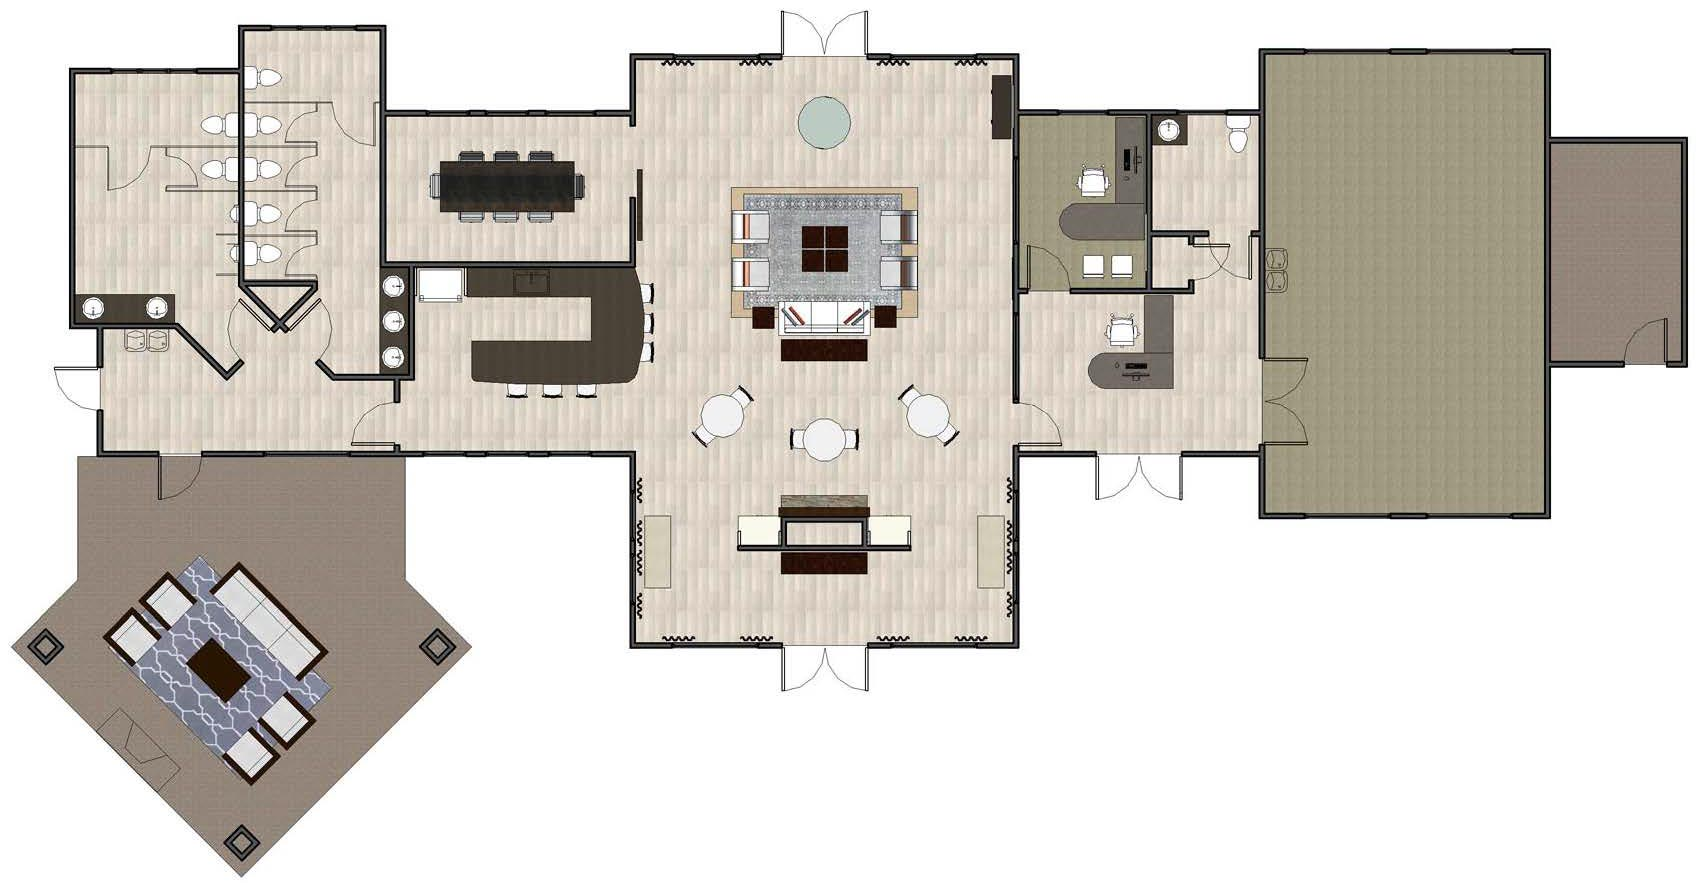 rendering ammenities center floorplan